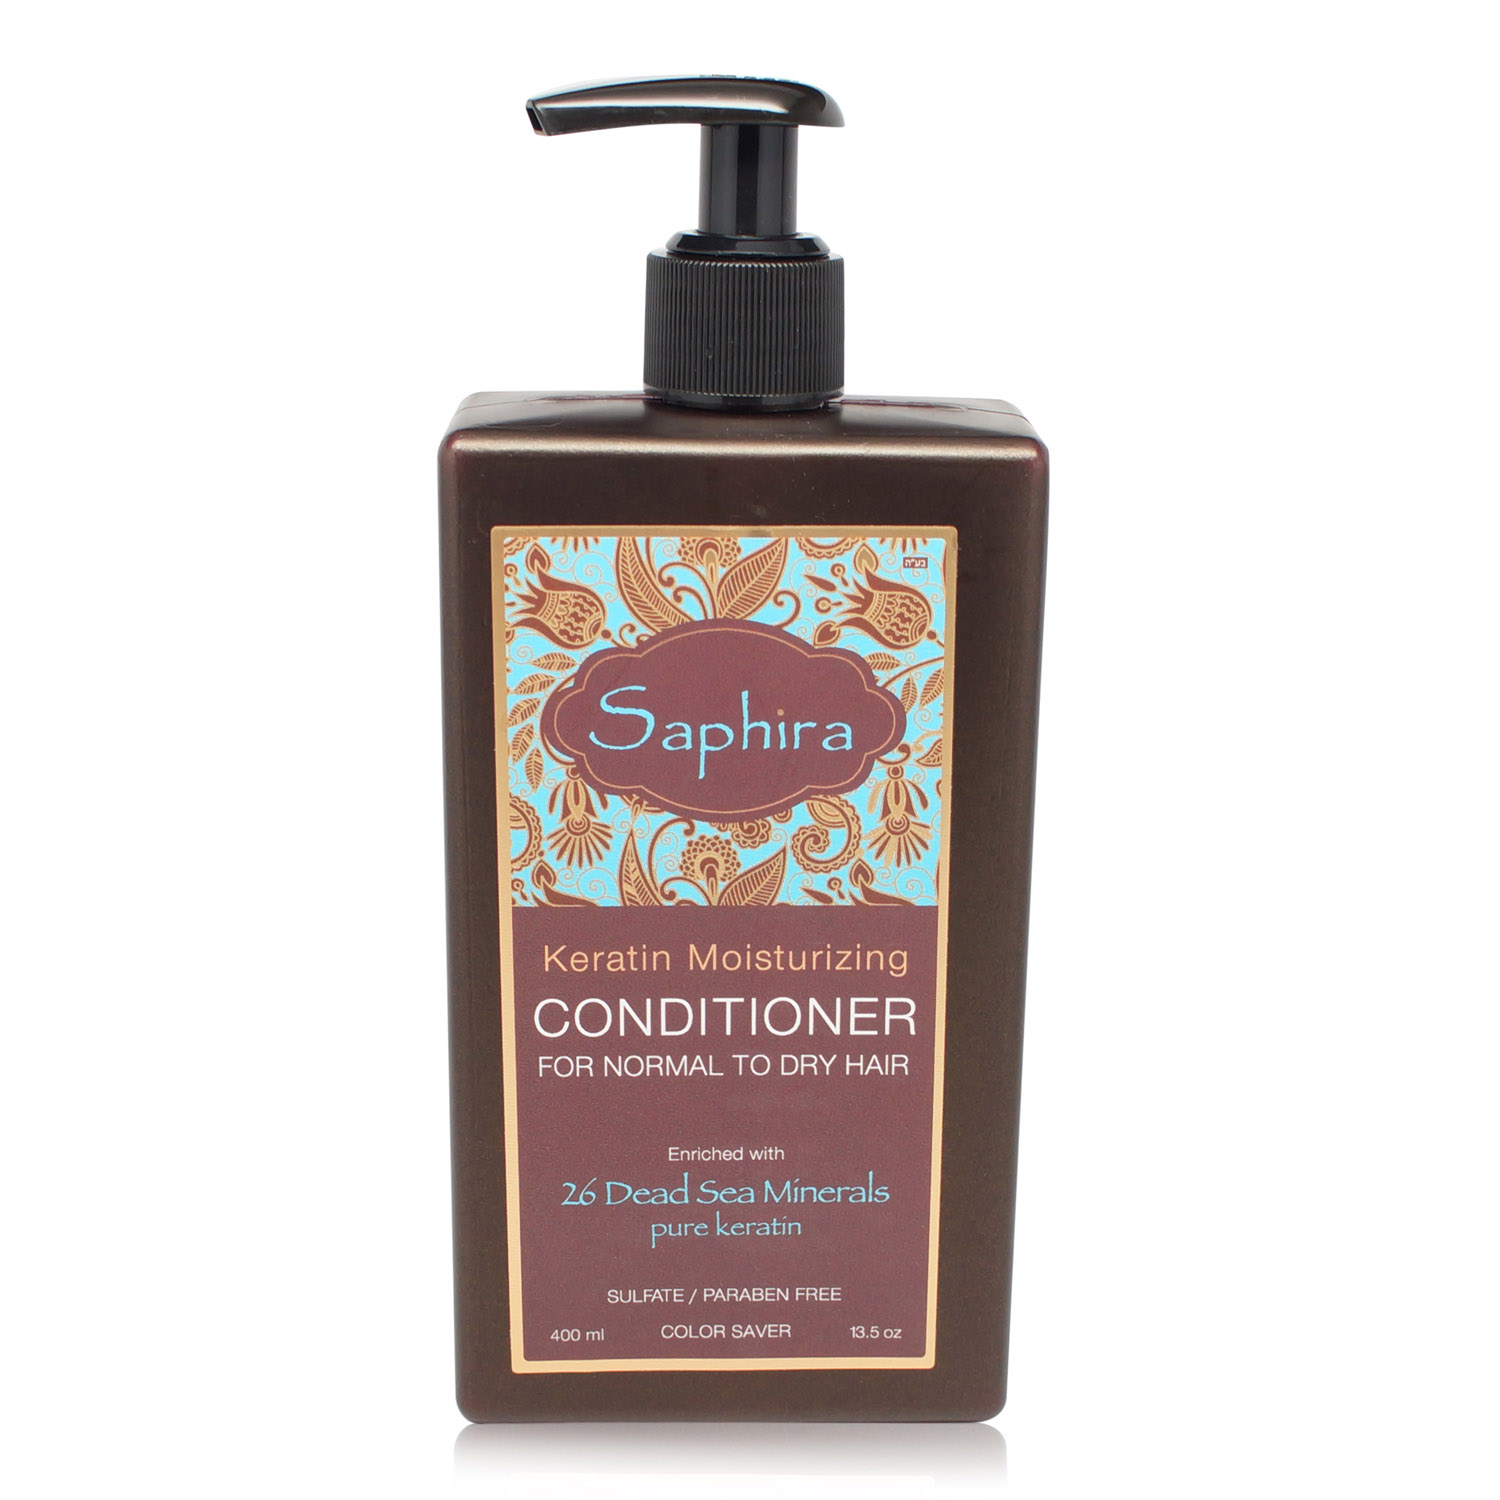 Saphira Keratin Moisturizing Conditioner 13.5 Oz